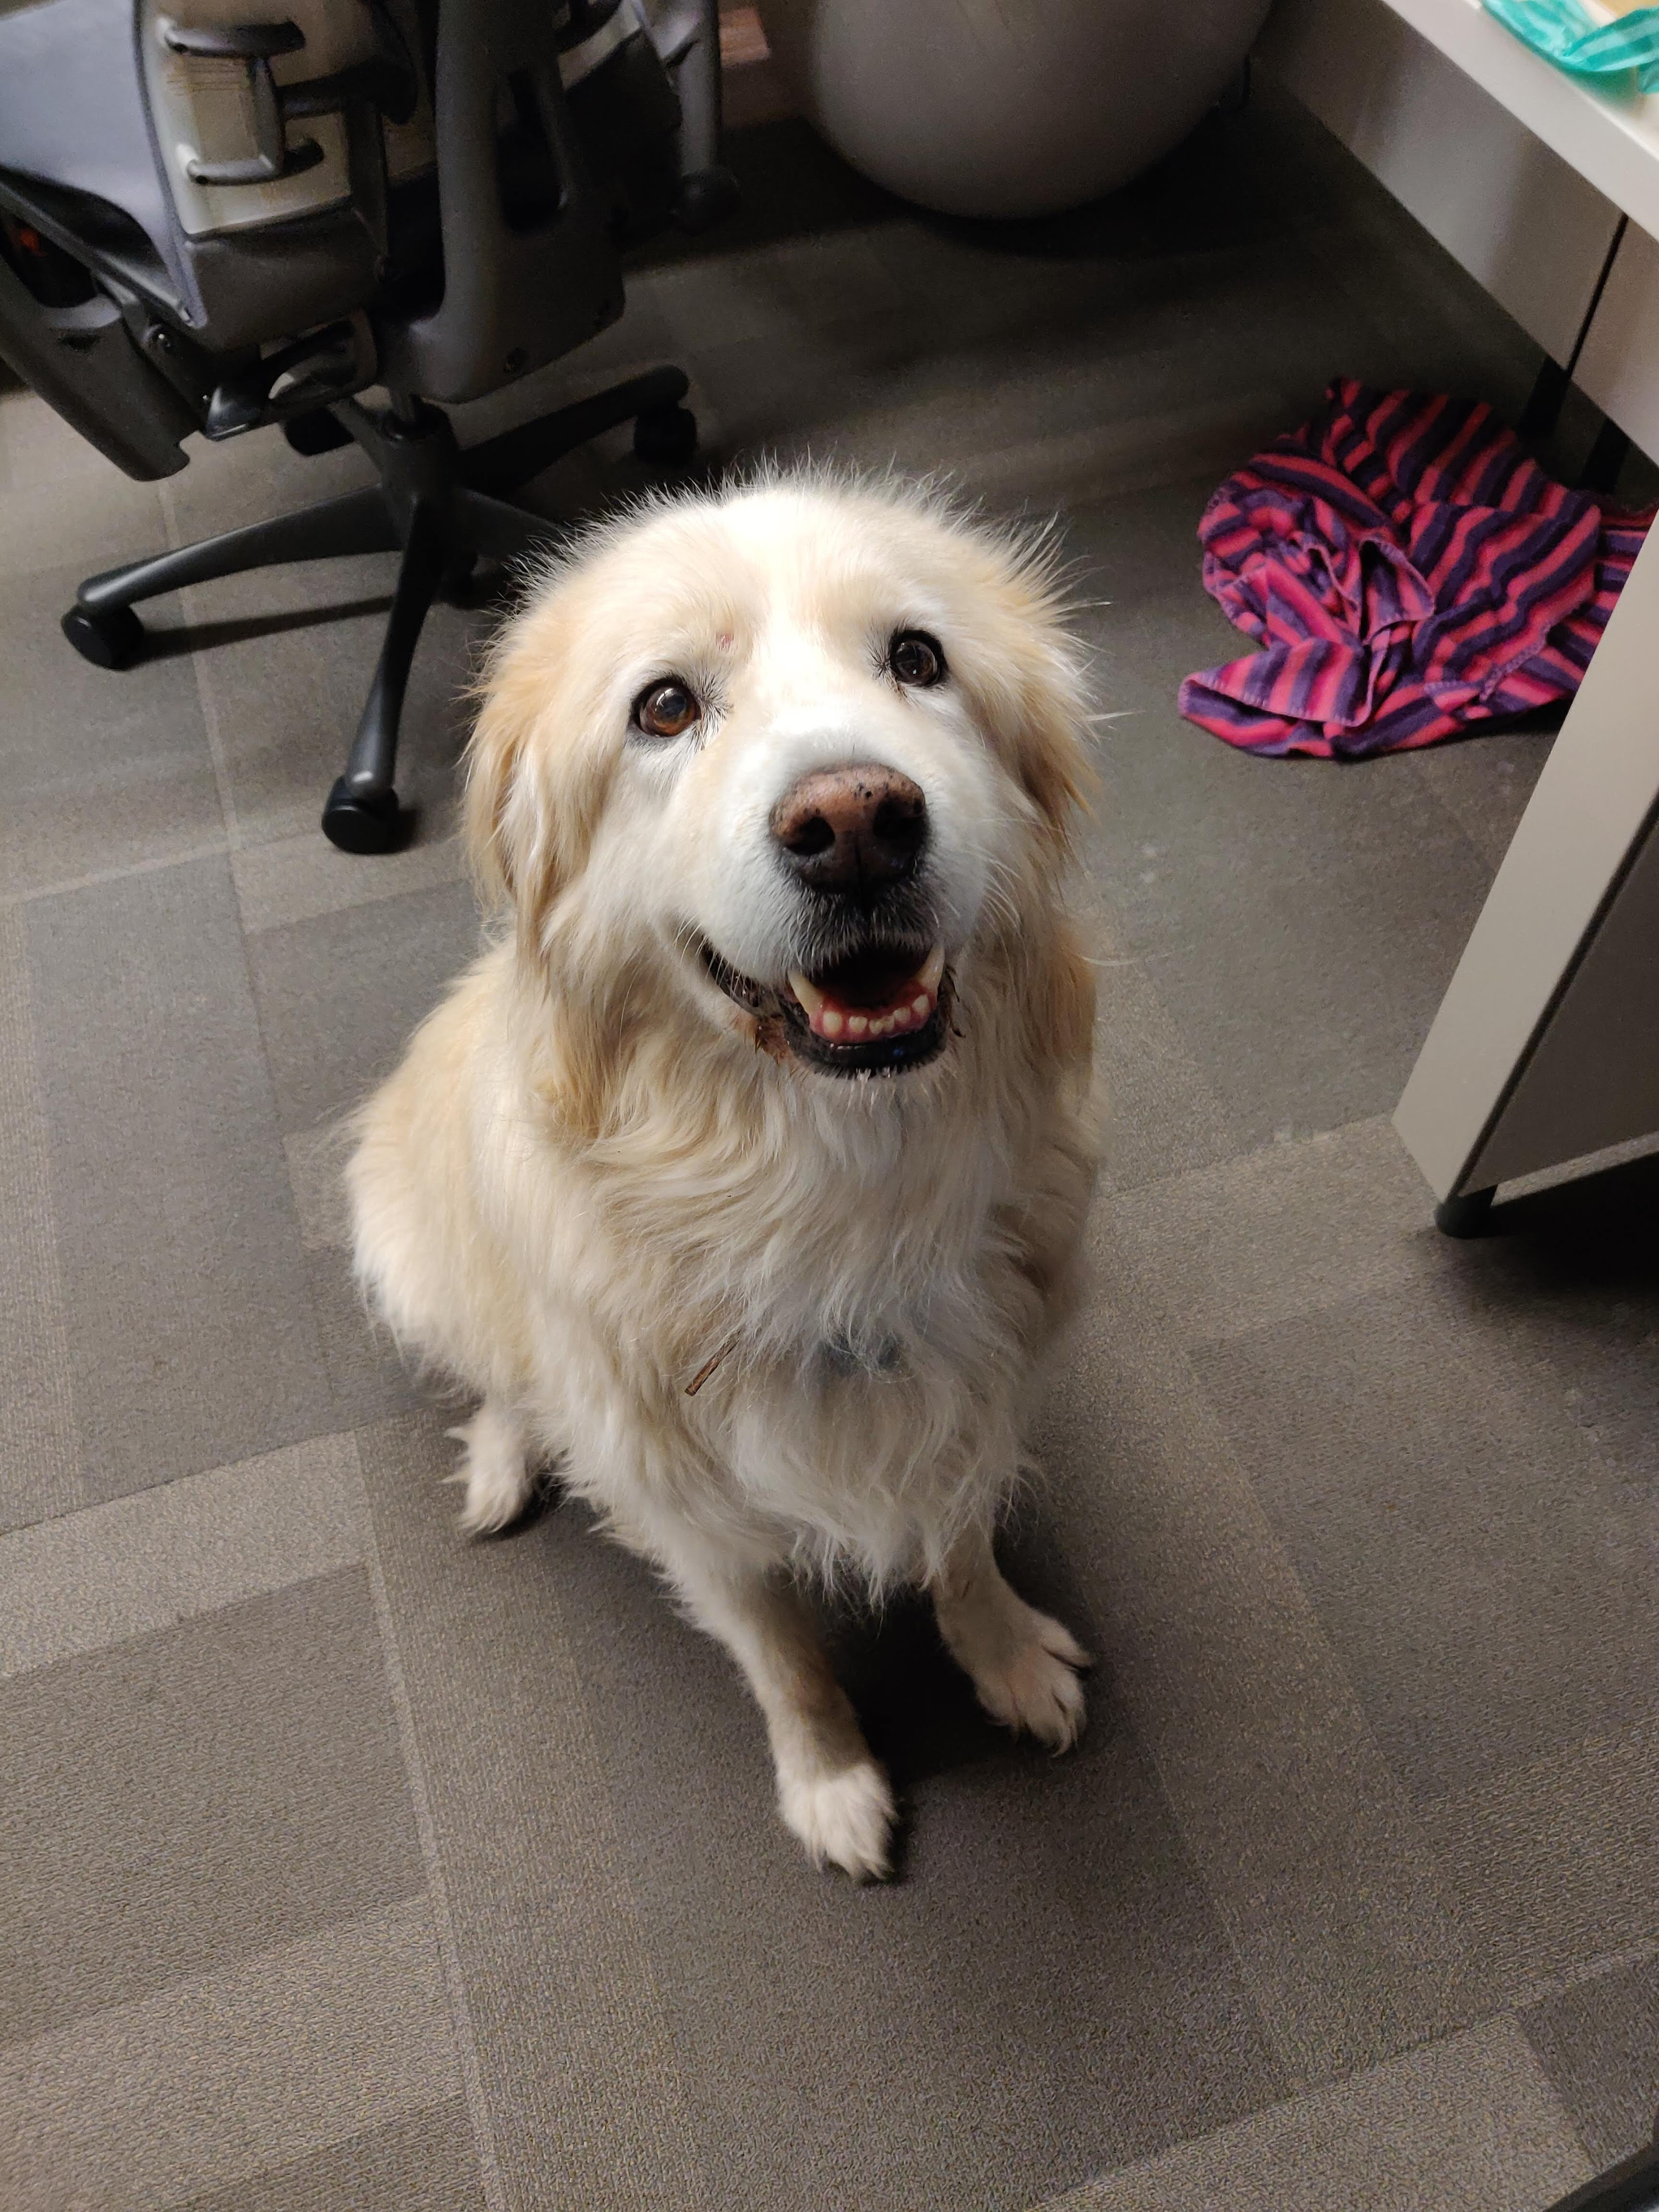 White Dog in an office cubicle, sitting on the floor anticipating a treat.